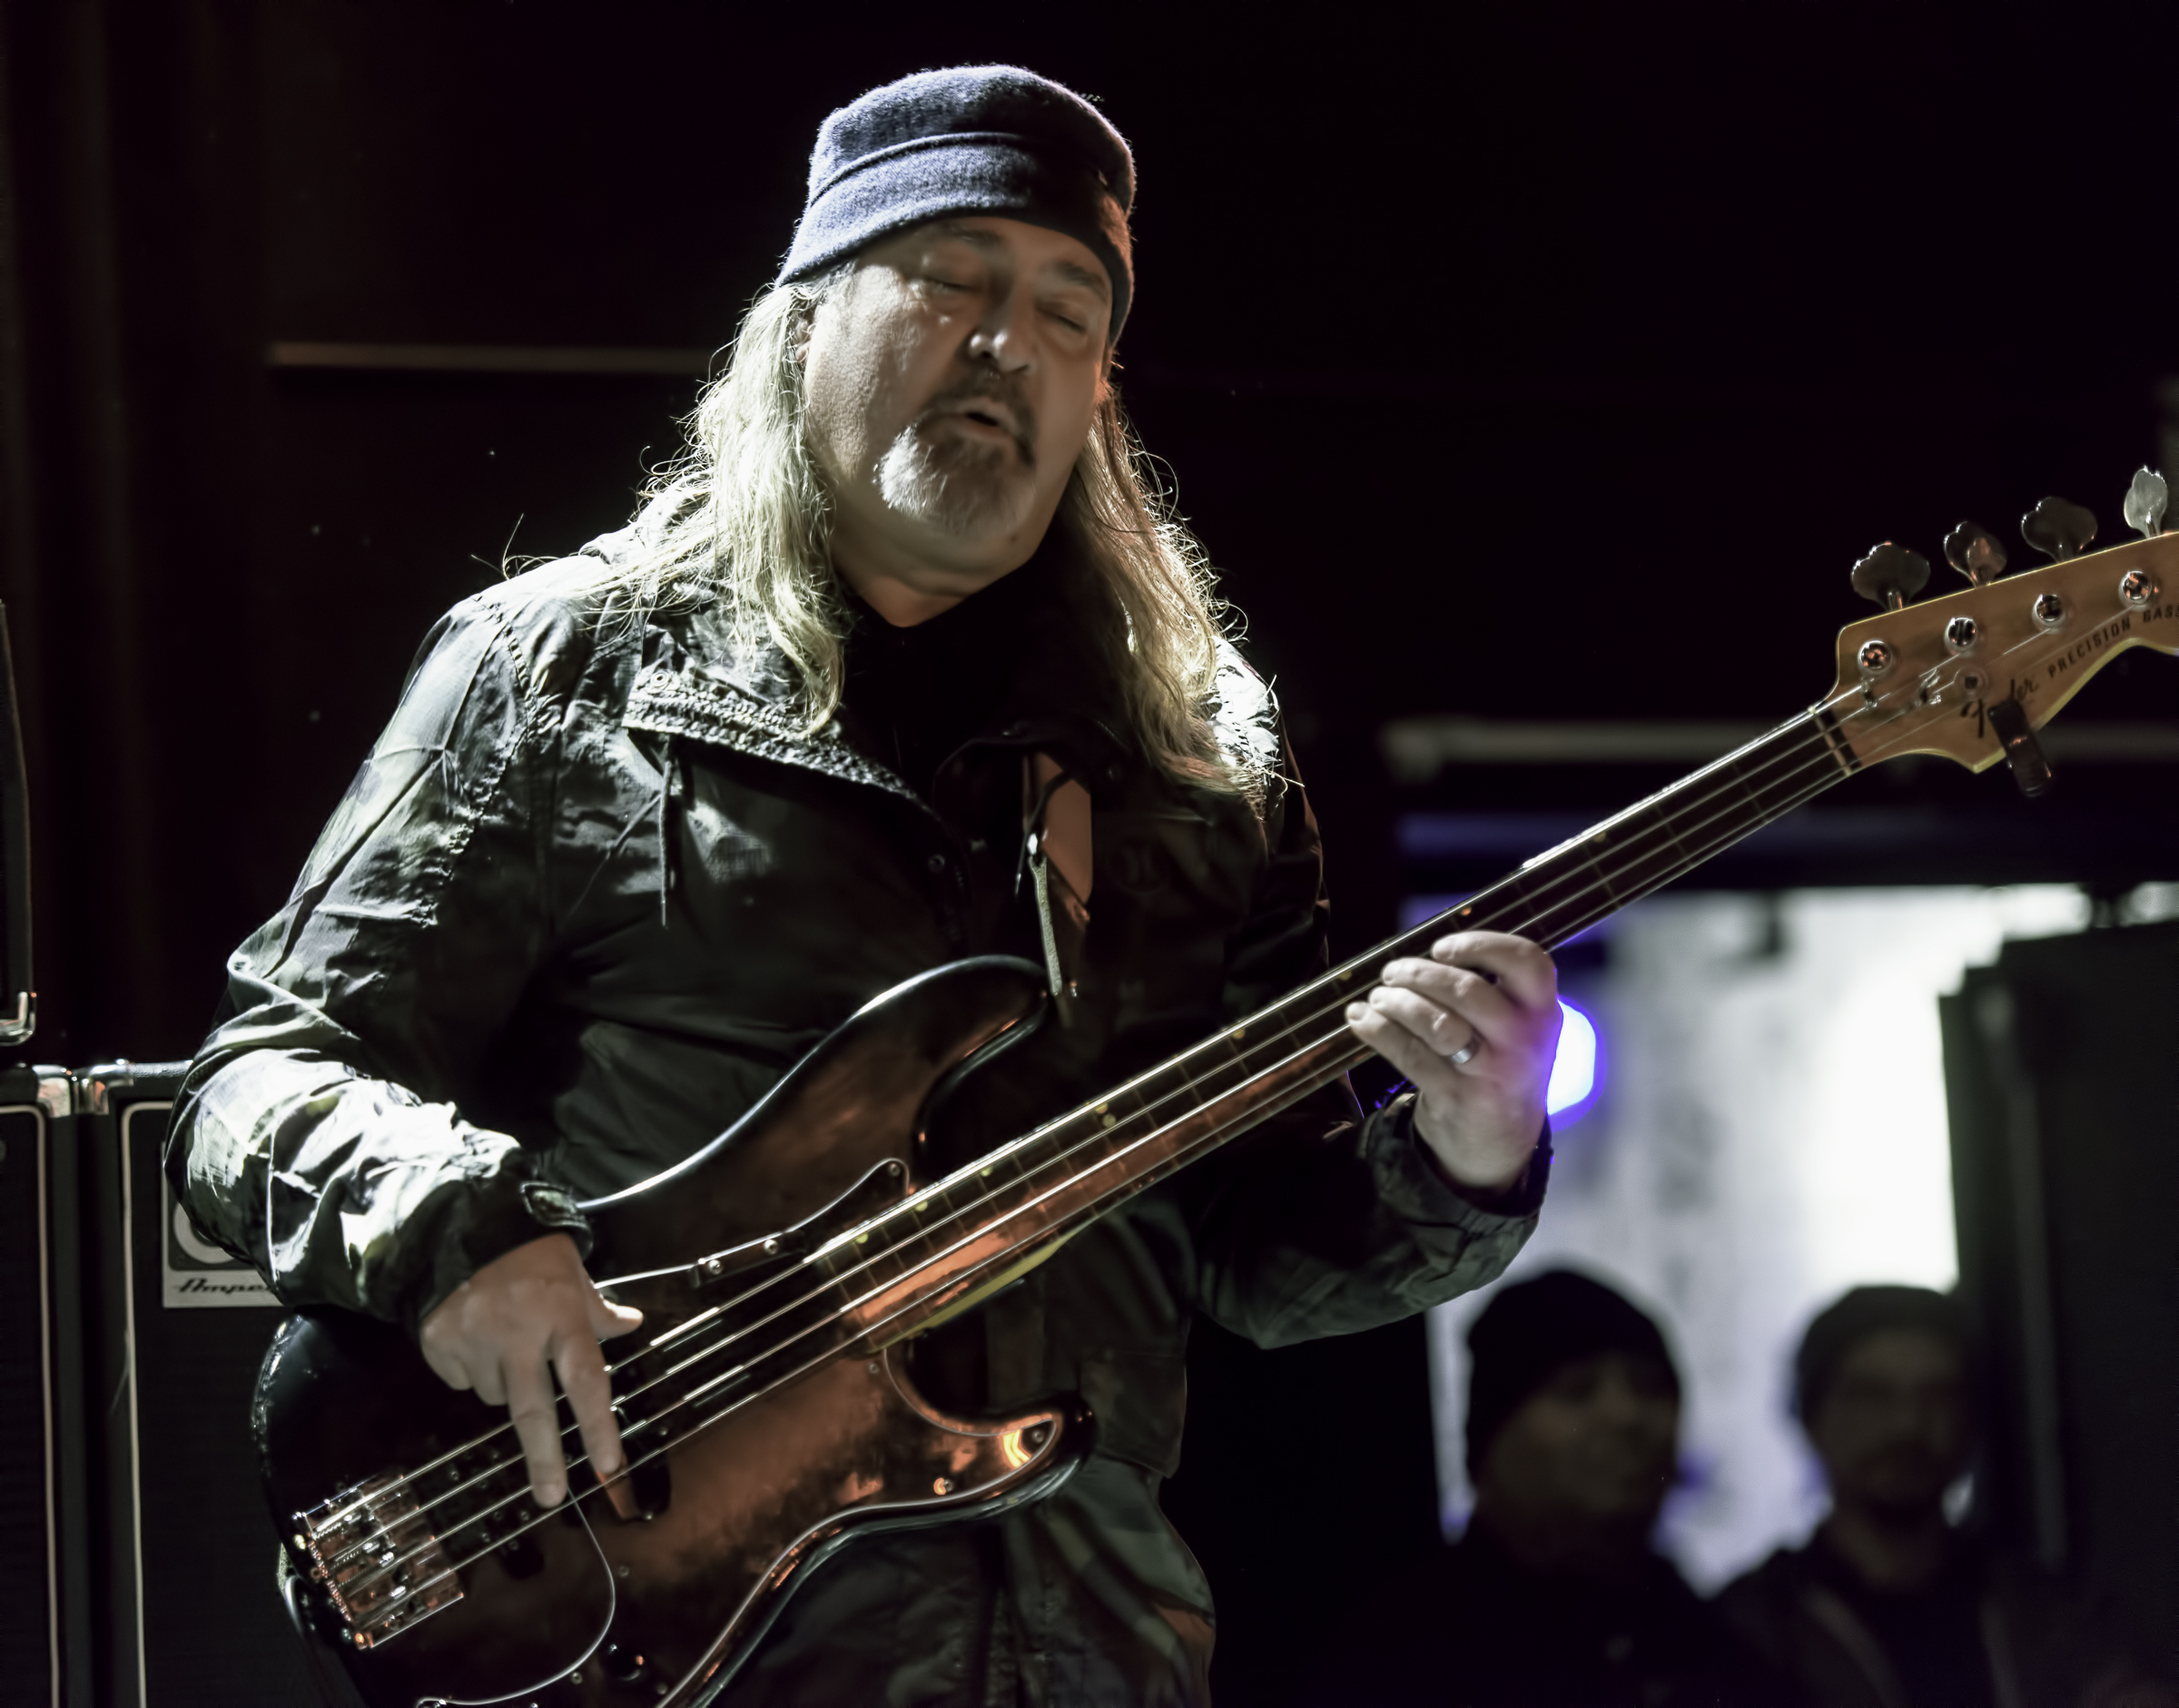 Bill Laswell with Colin Stetson At The NYC Winter Jazzfest 2016